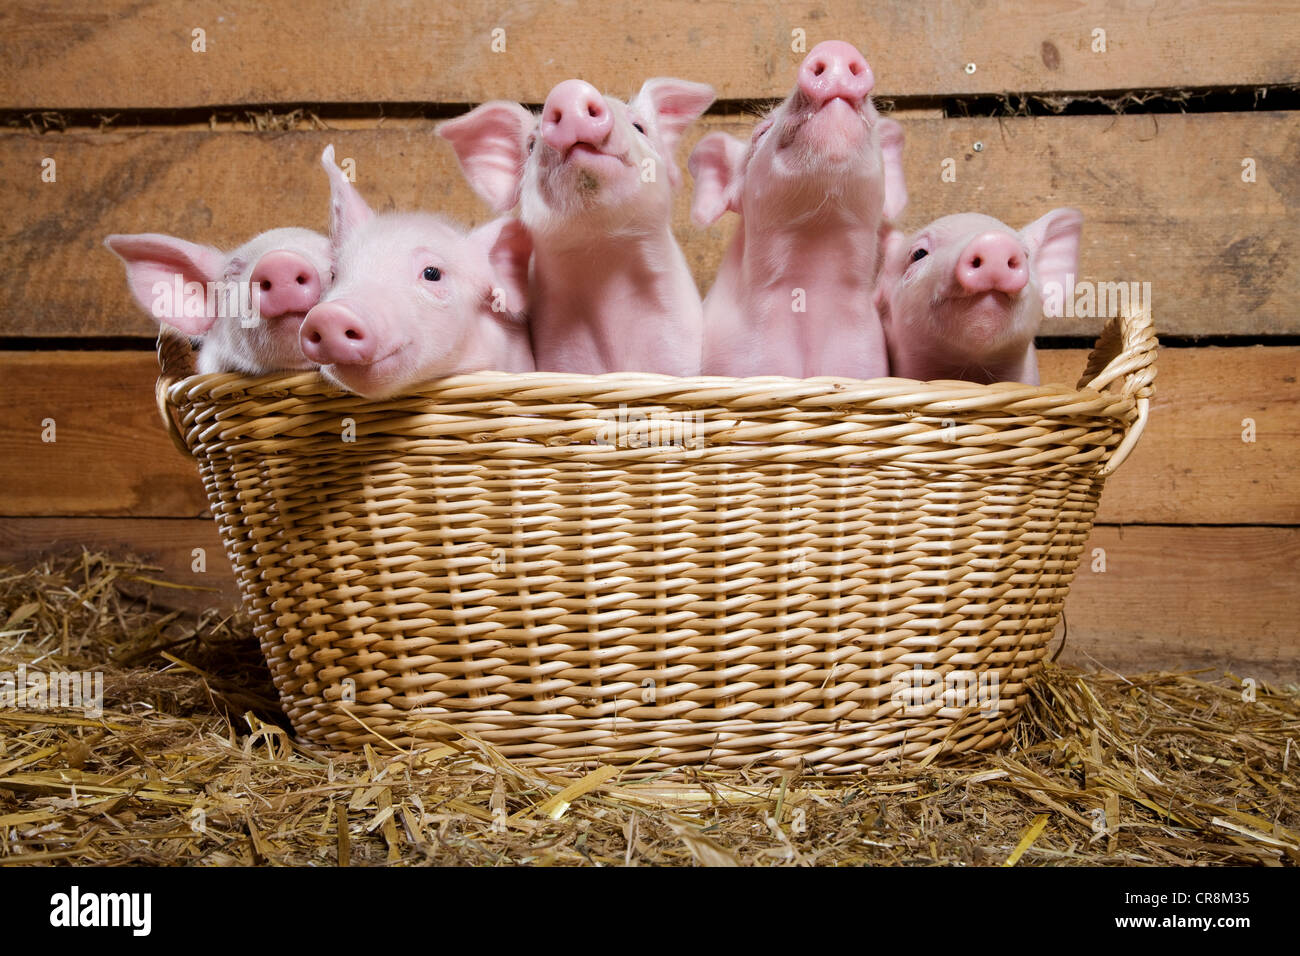 Five piglets in basket - Stock Image